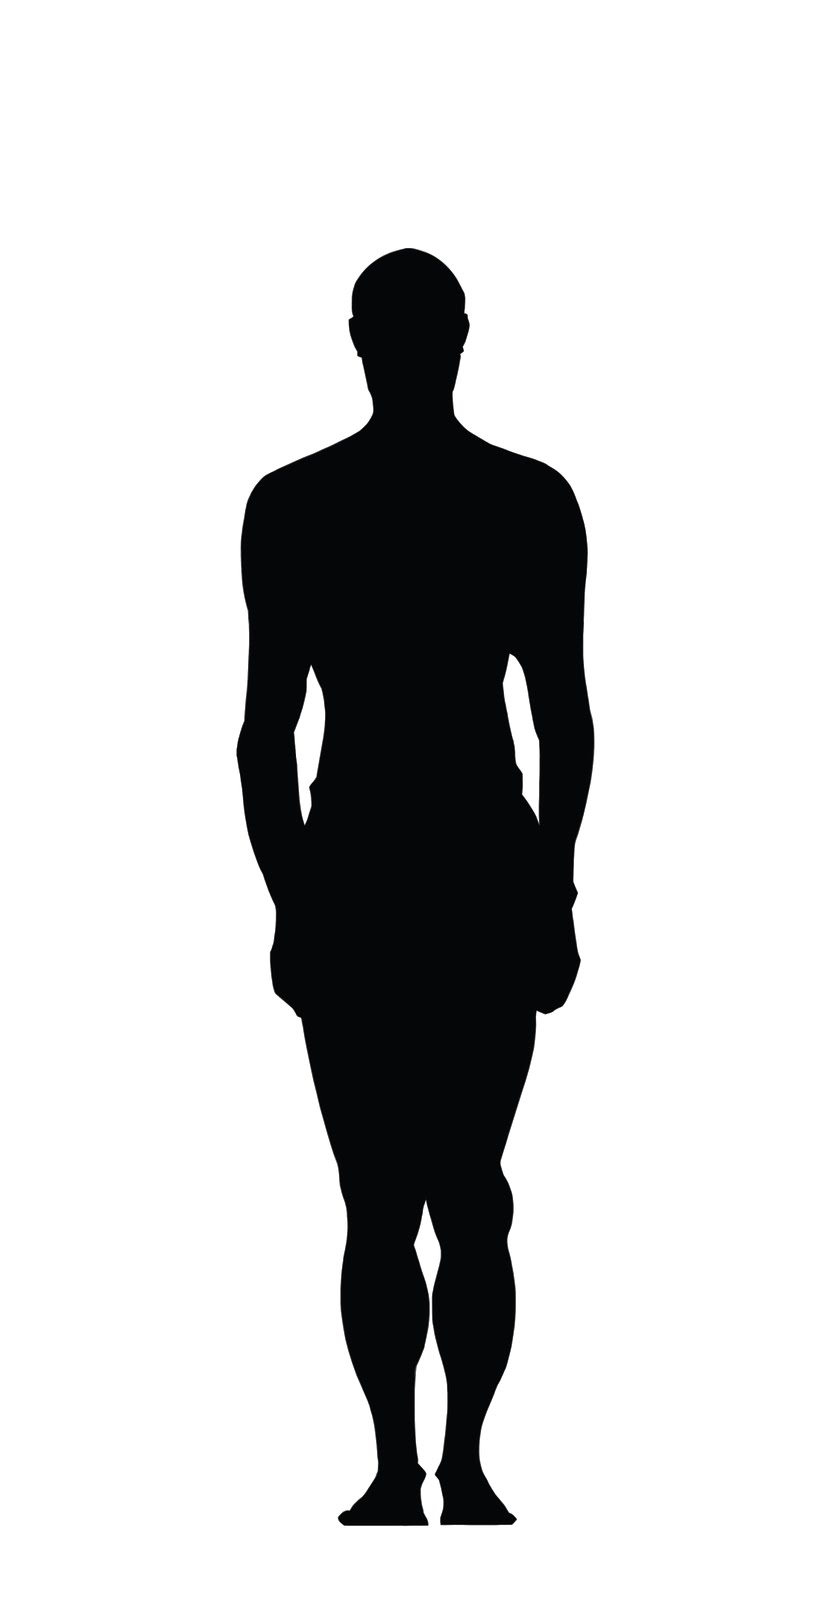 Human Body Silhouette - Clipart library - Human Figure PNG HD